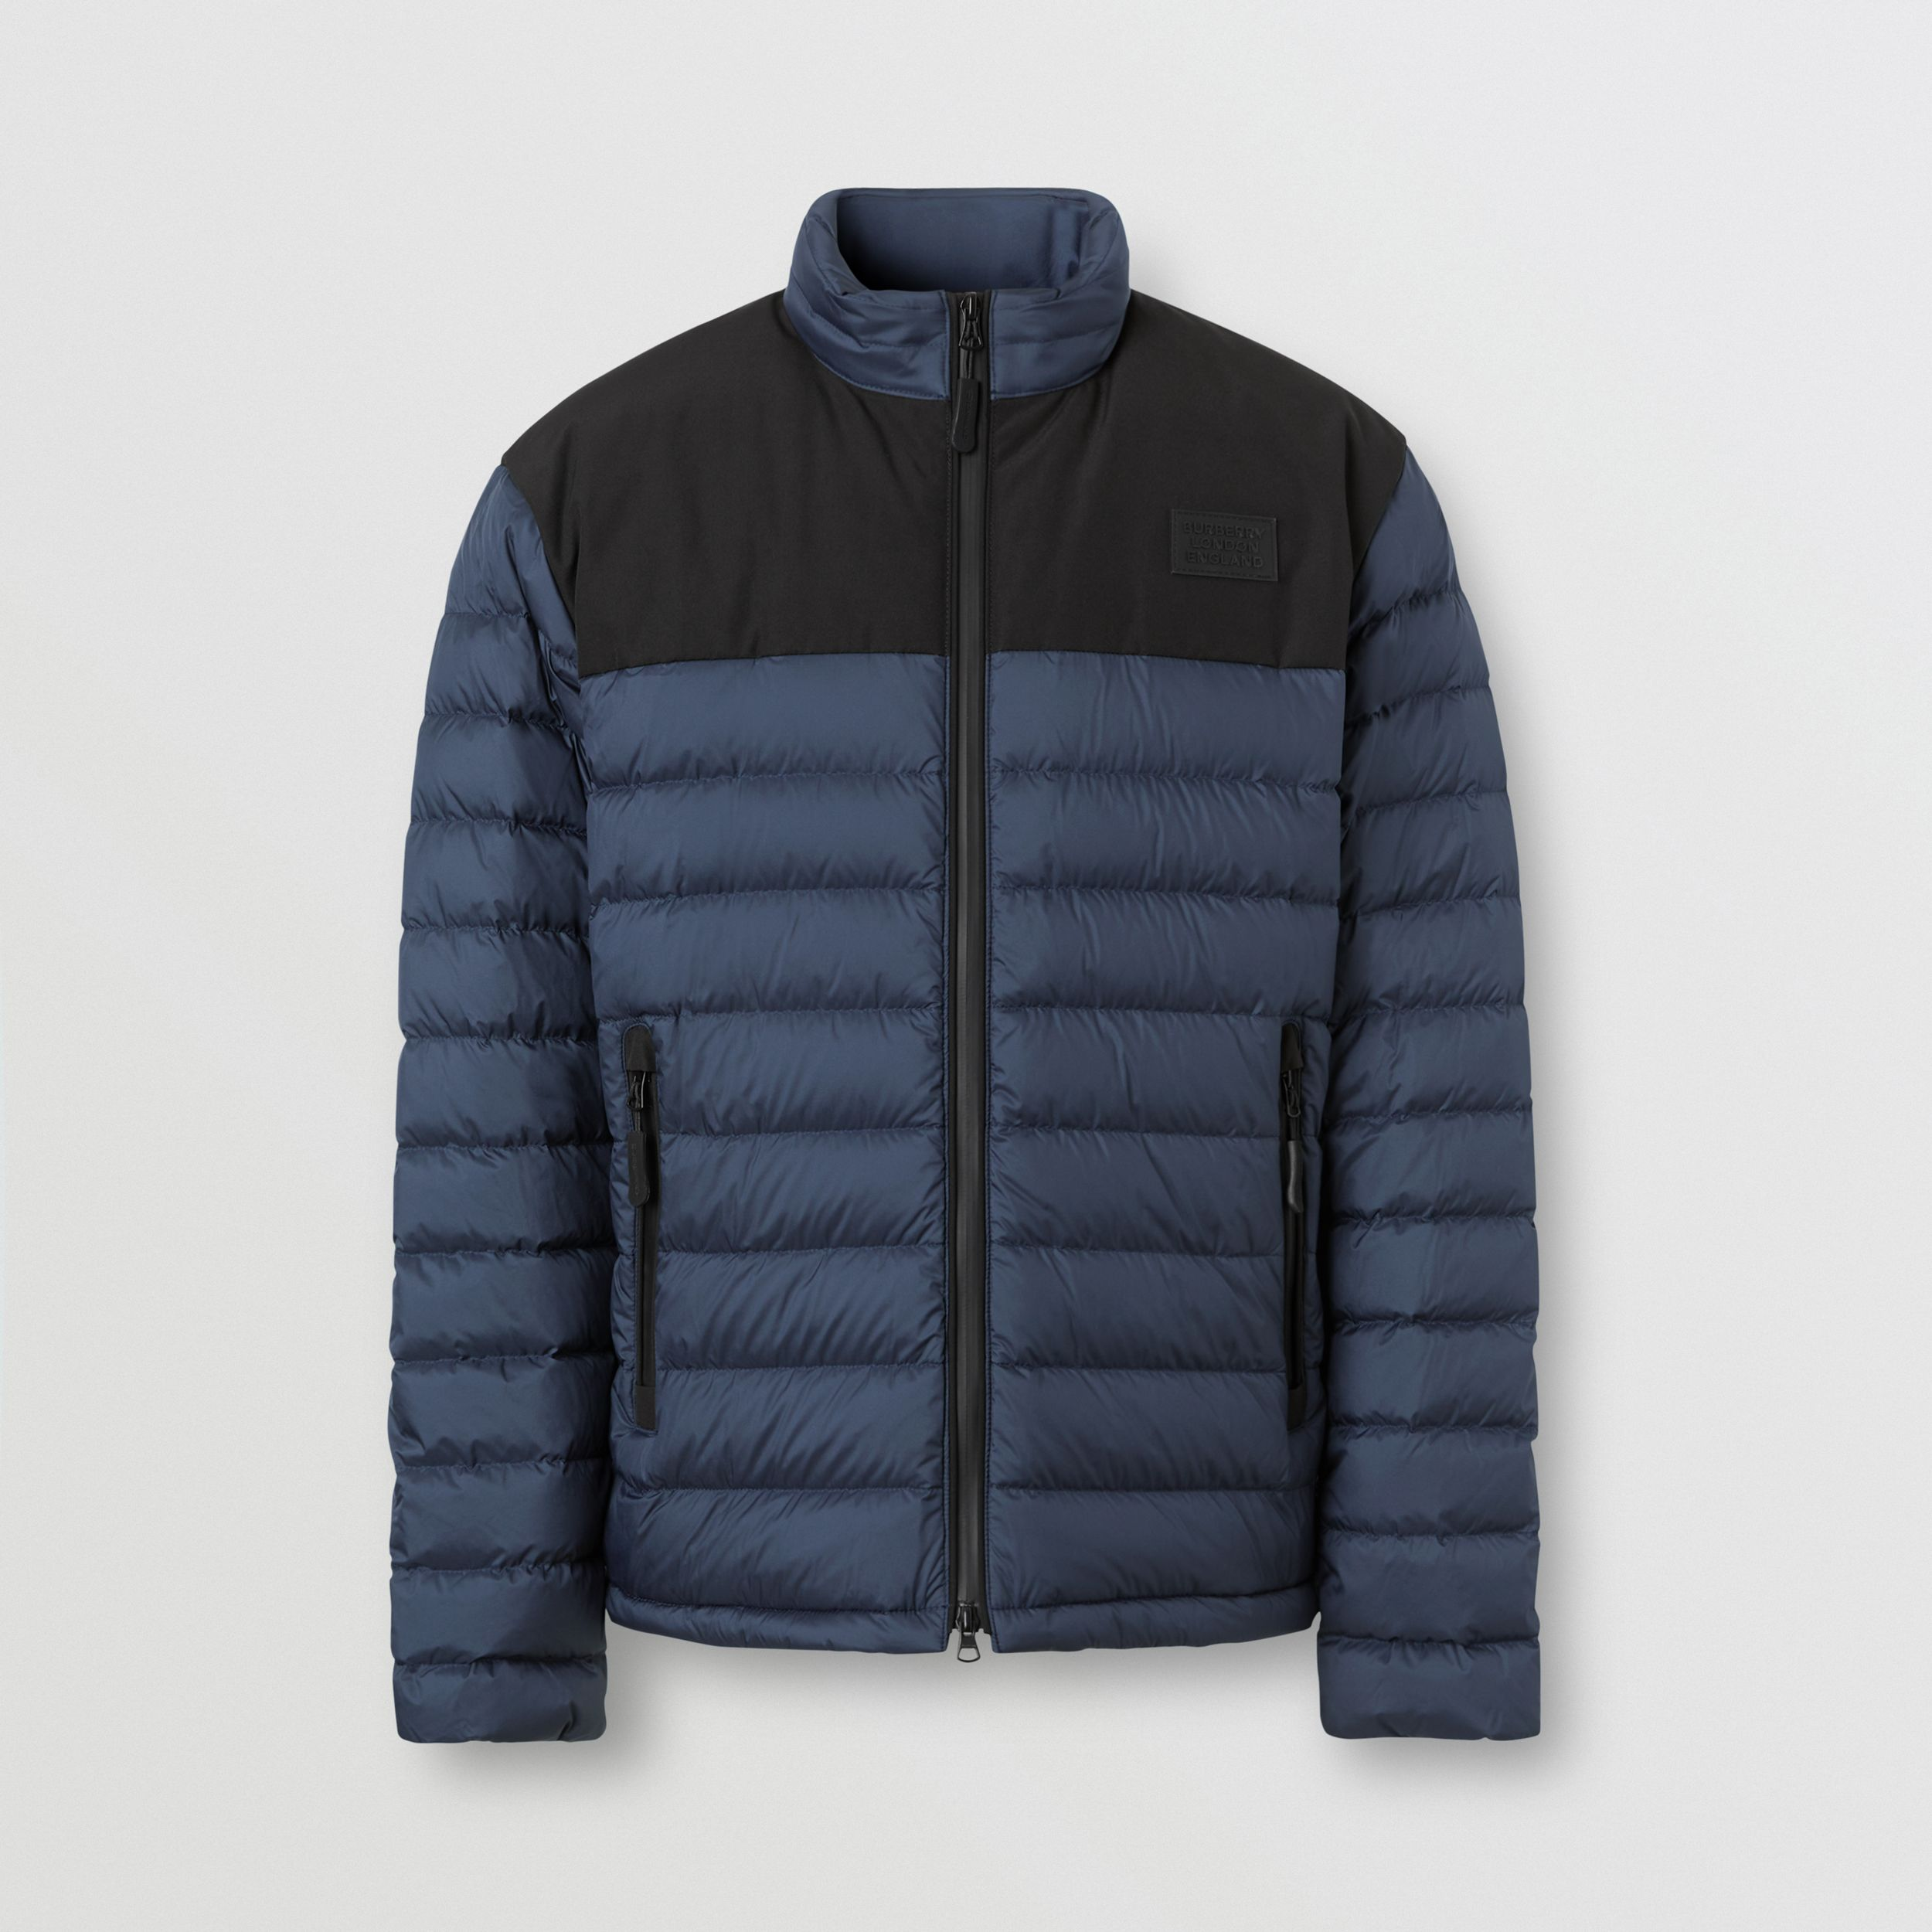 Logo Appliqué Lightweight Puffer Jacket in Navy - Men | Burberry Canada - 4